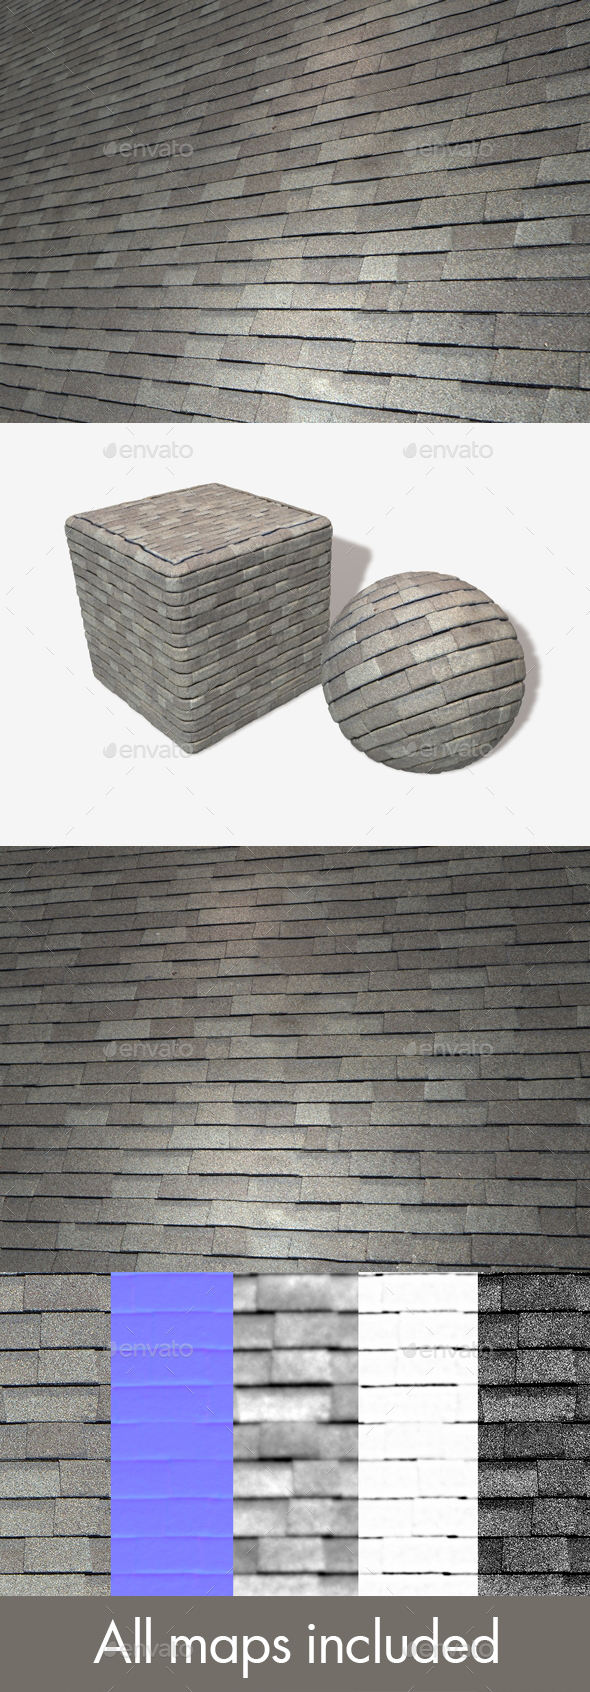 Random New Roof Tiles Seamless Texture - 3DOcean Item for Sale